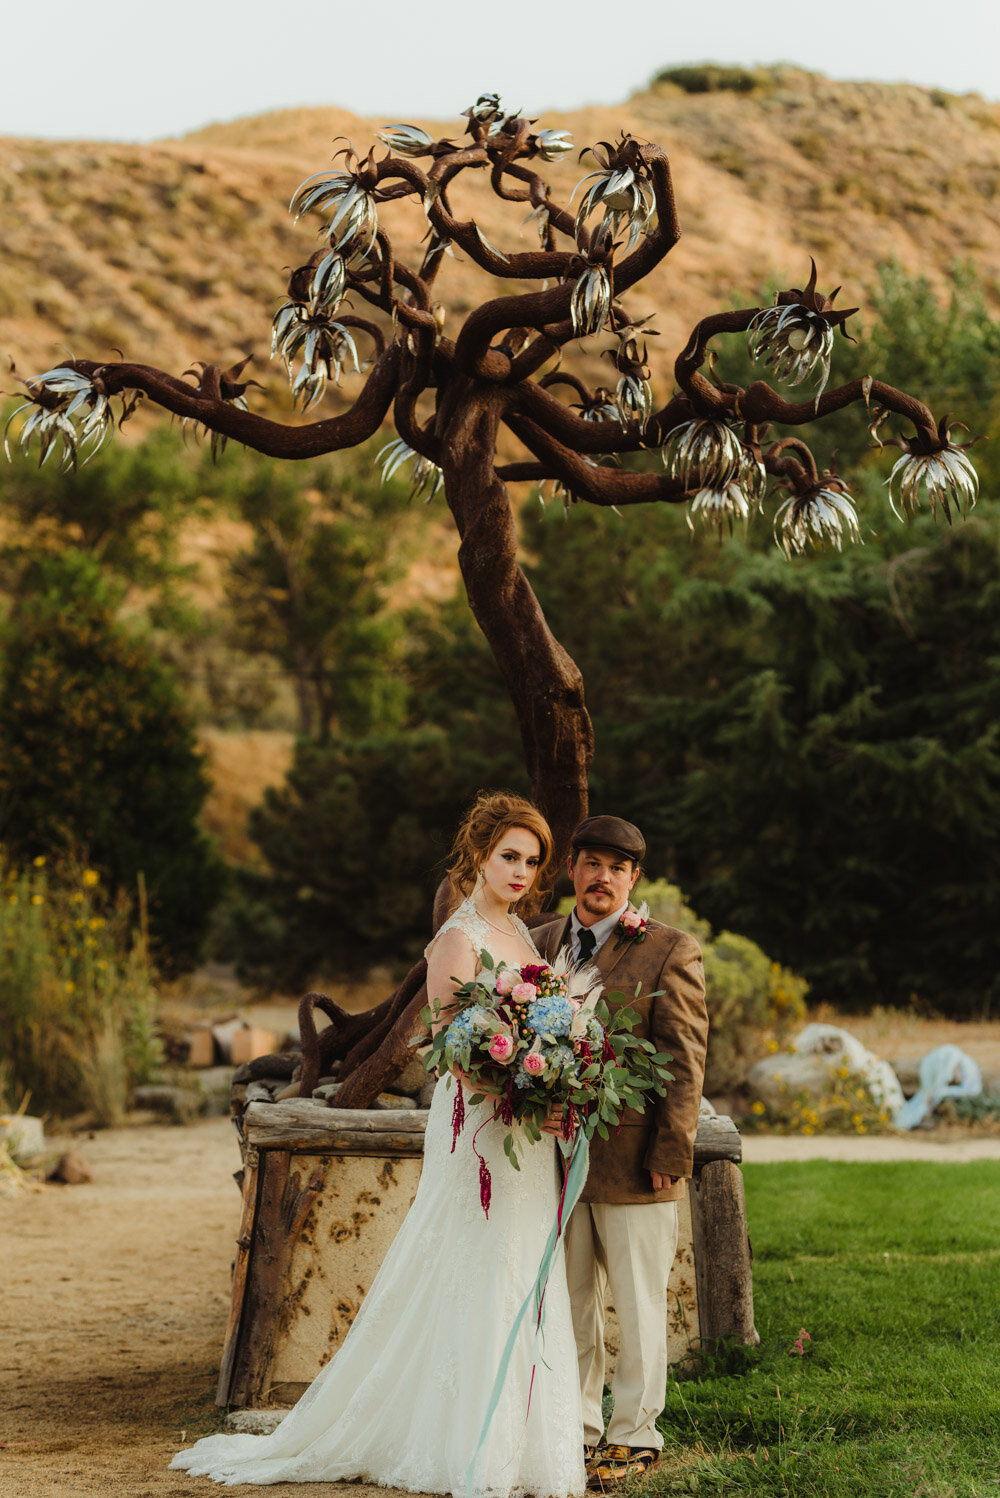 River School Farm Wedding, photo of couple in front of a burning man like sculpture